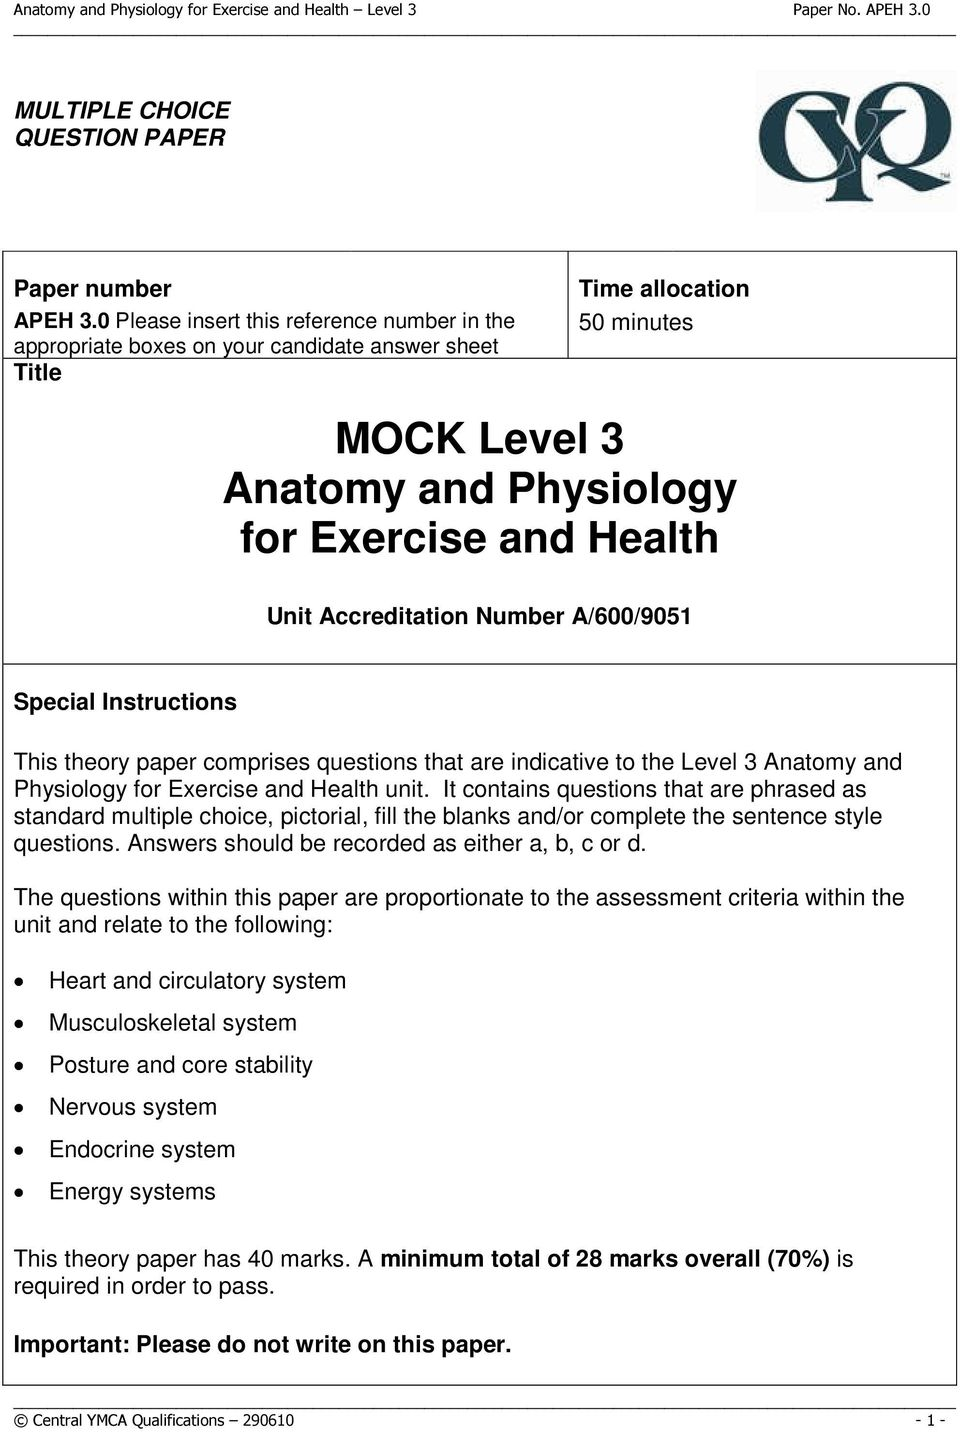 MOCK Level 3 Anatomy and Physiology for Exercise and Health - PDF